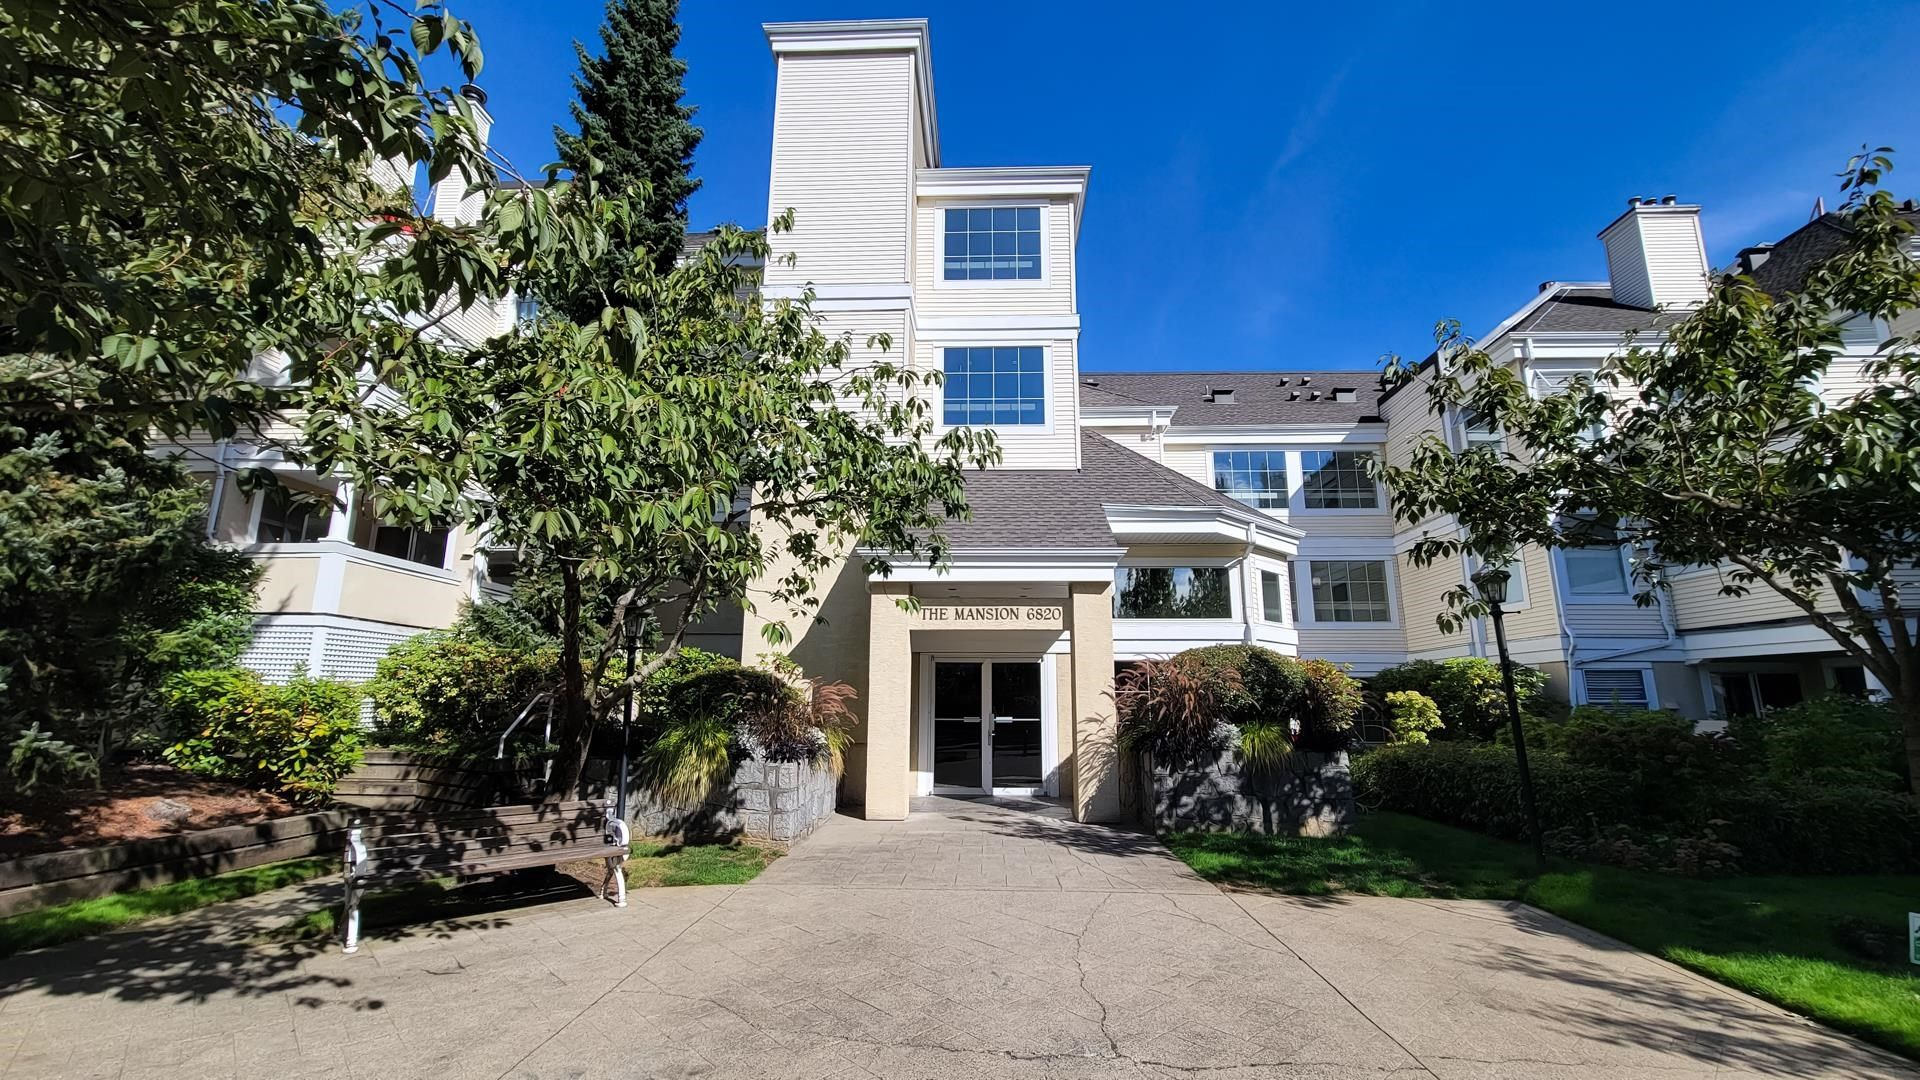 """Main Photo: 211 6820 RUMBLE Street in Burnaby: South Slope Condo for sale in """"GOVERNOR'S WALK"""" (Burnaby South)  : MLS®# R2616761"""